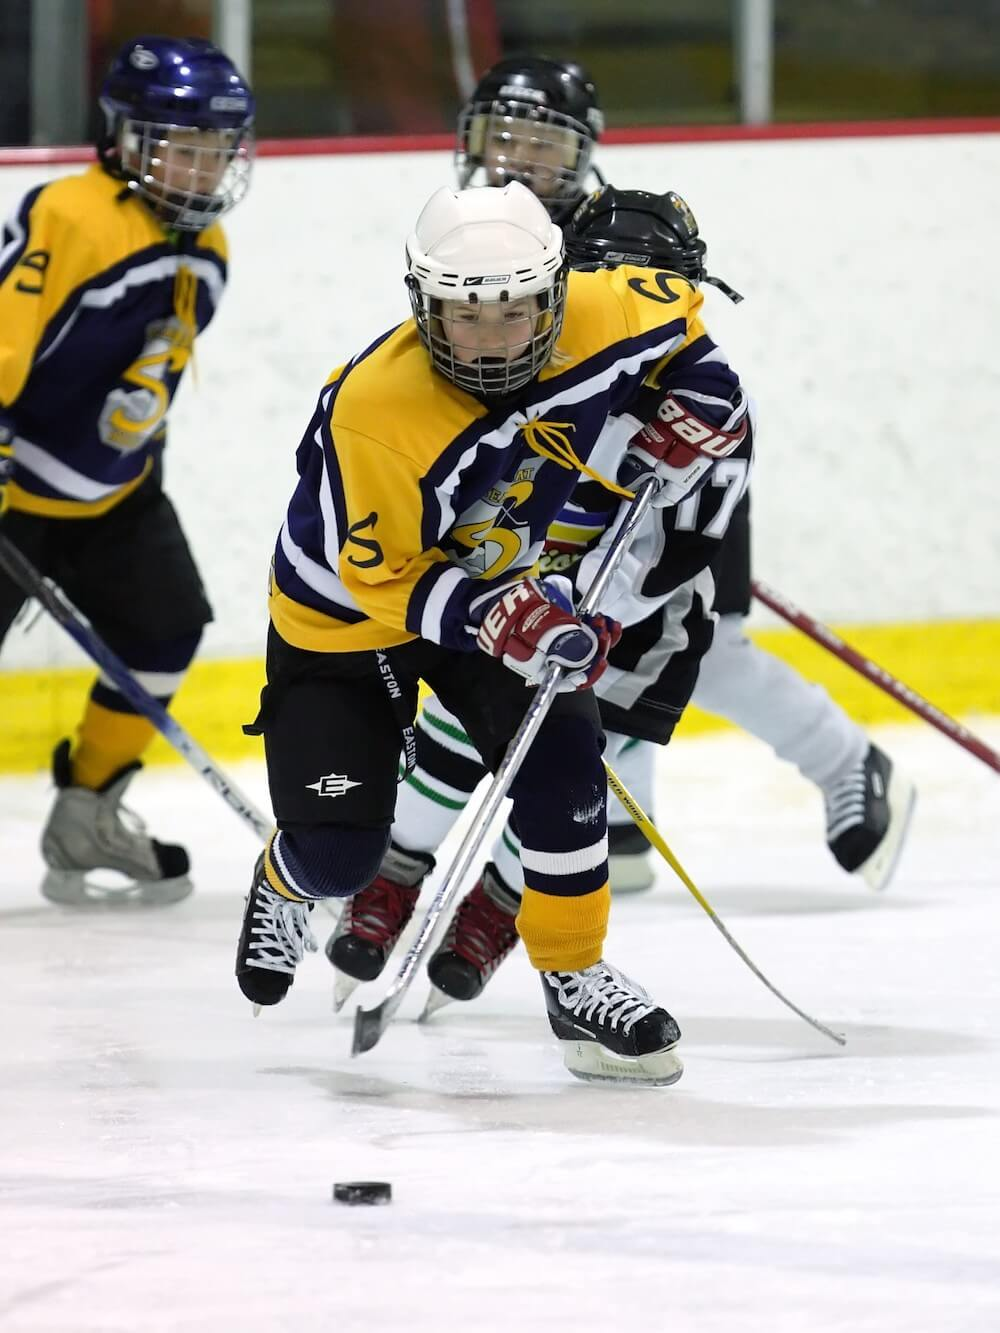 Young Hockey Player on Steamboat Stampede in Steamboat Springs Colorado